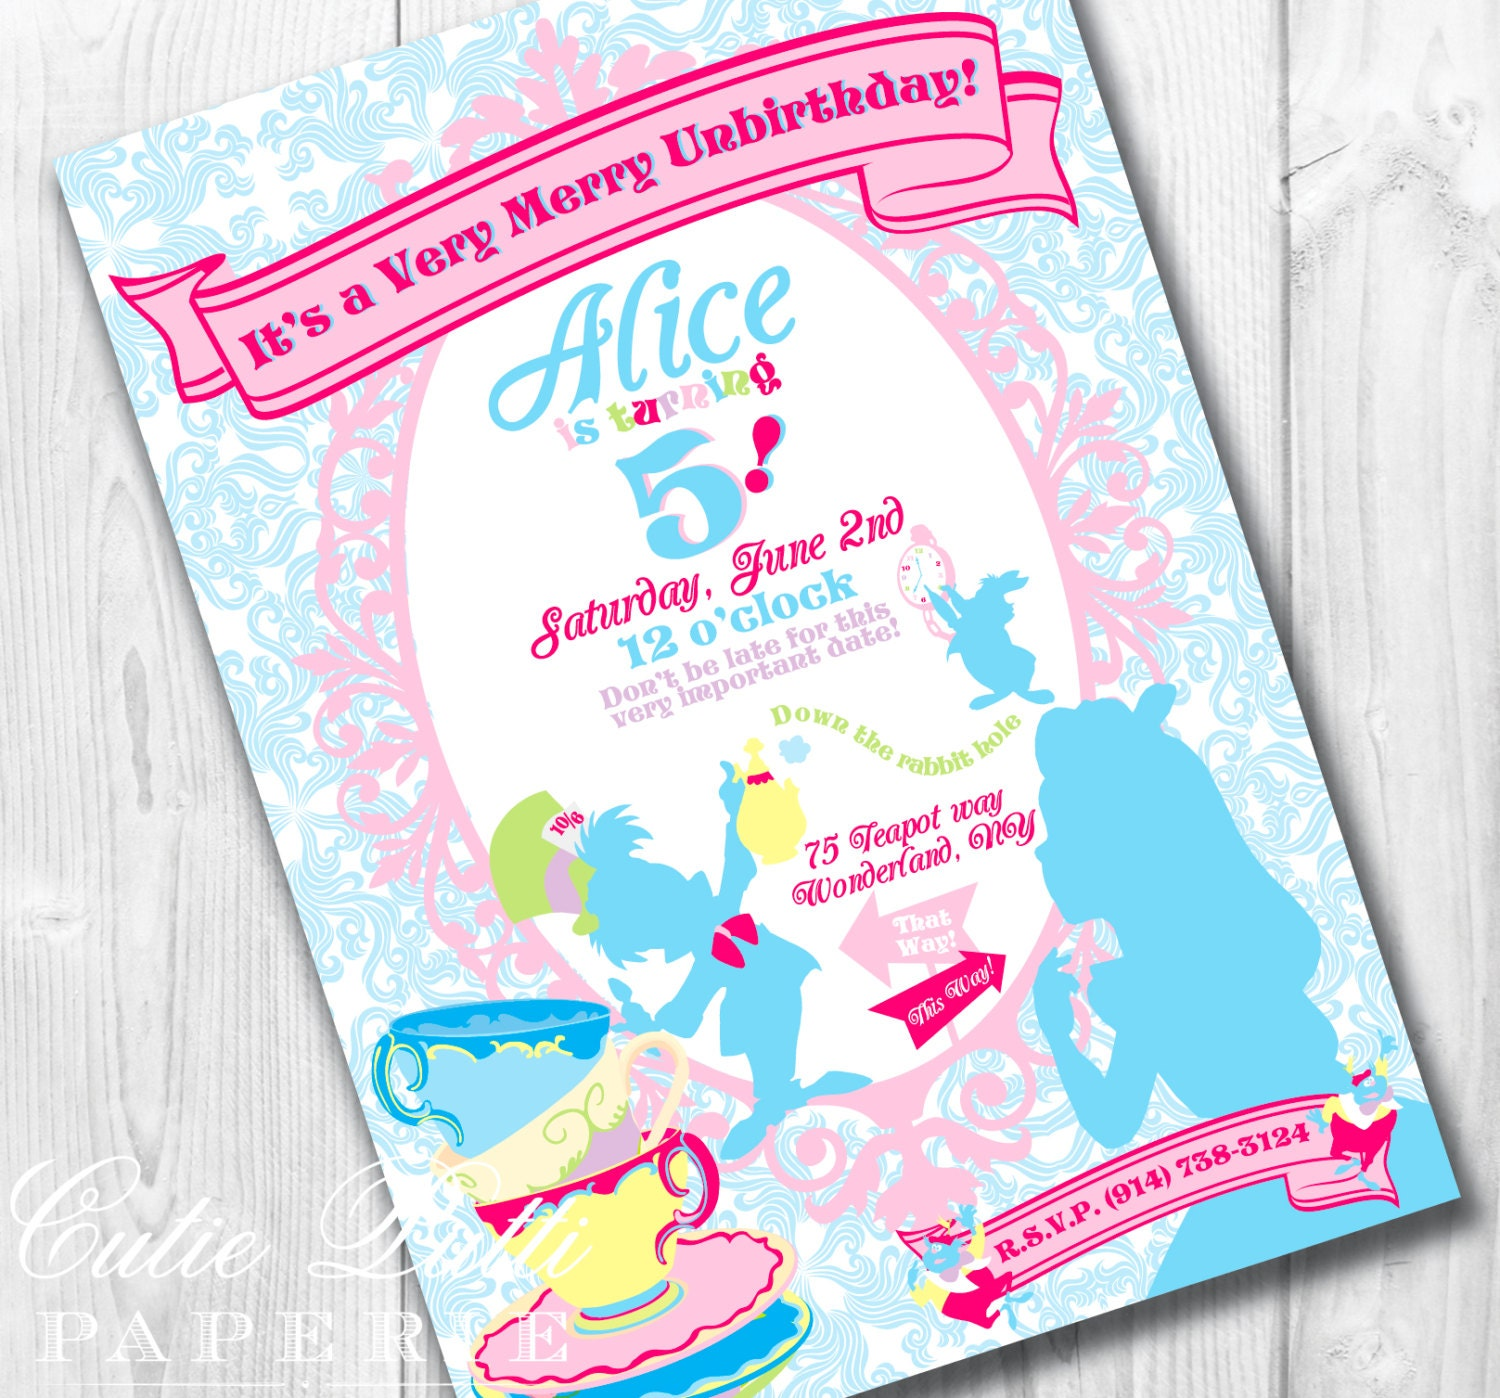 Alice In Wonderland Party Invitations gangcraftnet